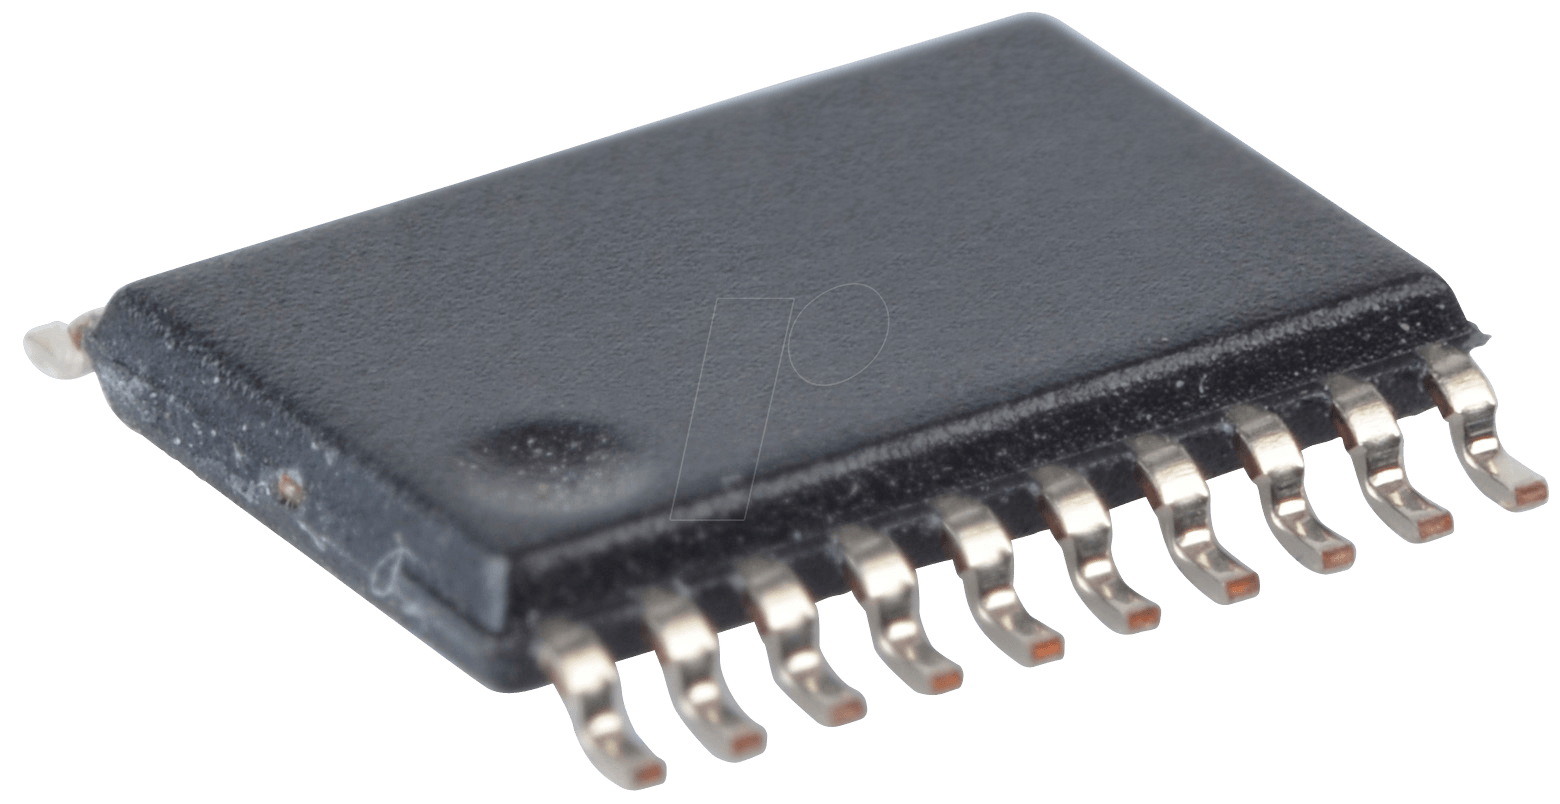 Mcp 2515 I St Ic Can Controller Tssop 20 At Reichelt Elektronik Small Outline Integrated Circuit The Microchip Mcp2515